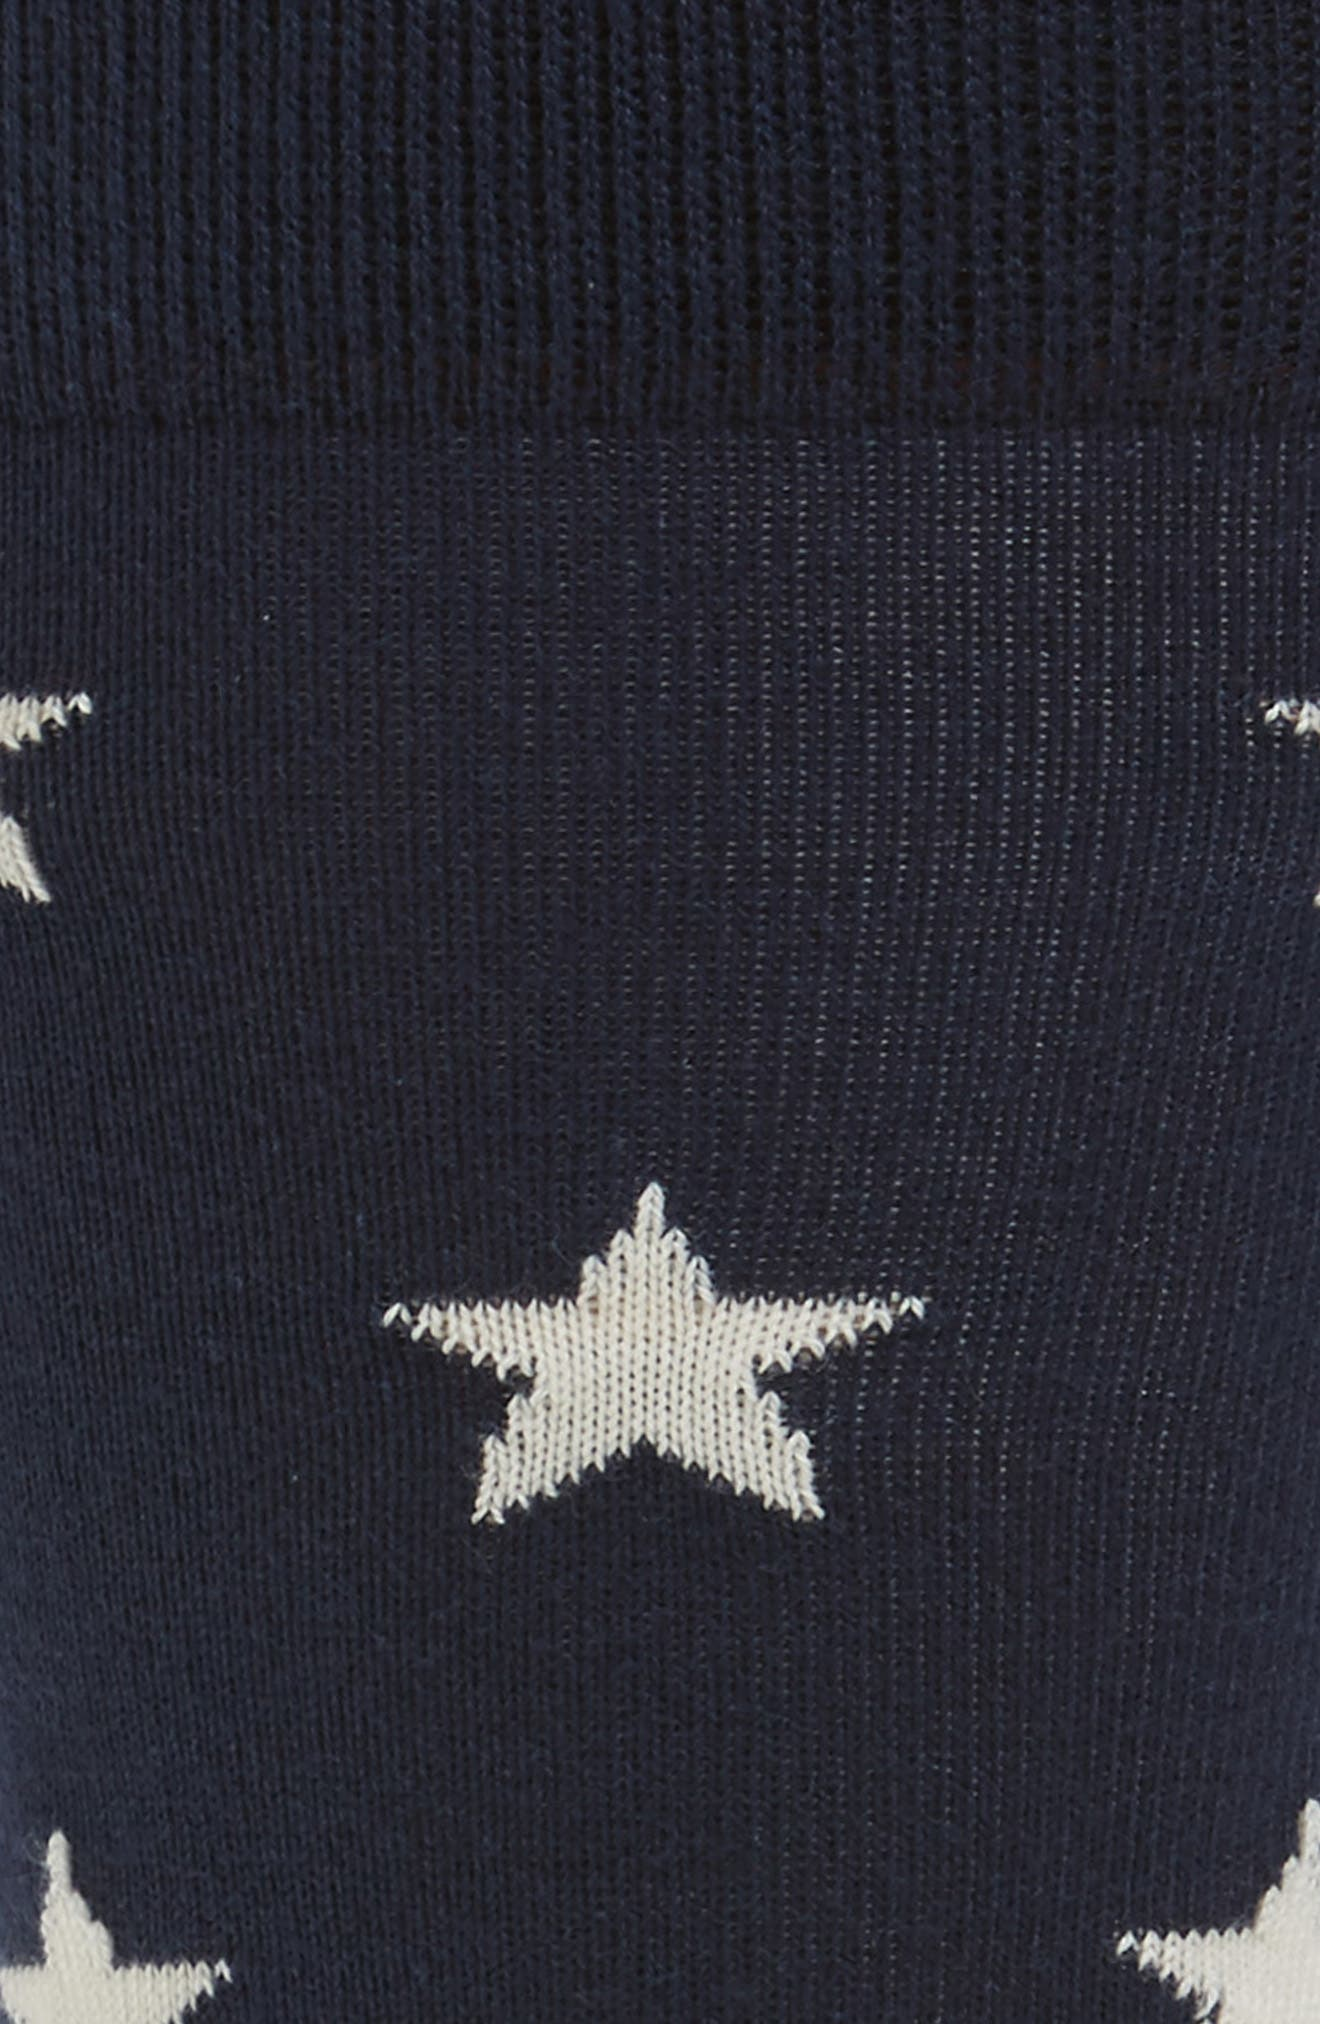 Stars & Stripes Socks,                             Alternate thumbnail 2, color,                             424